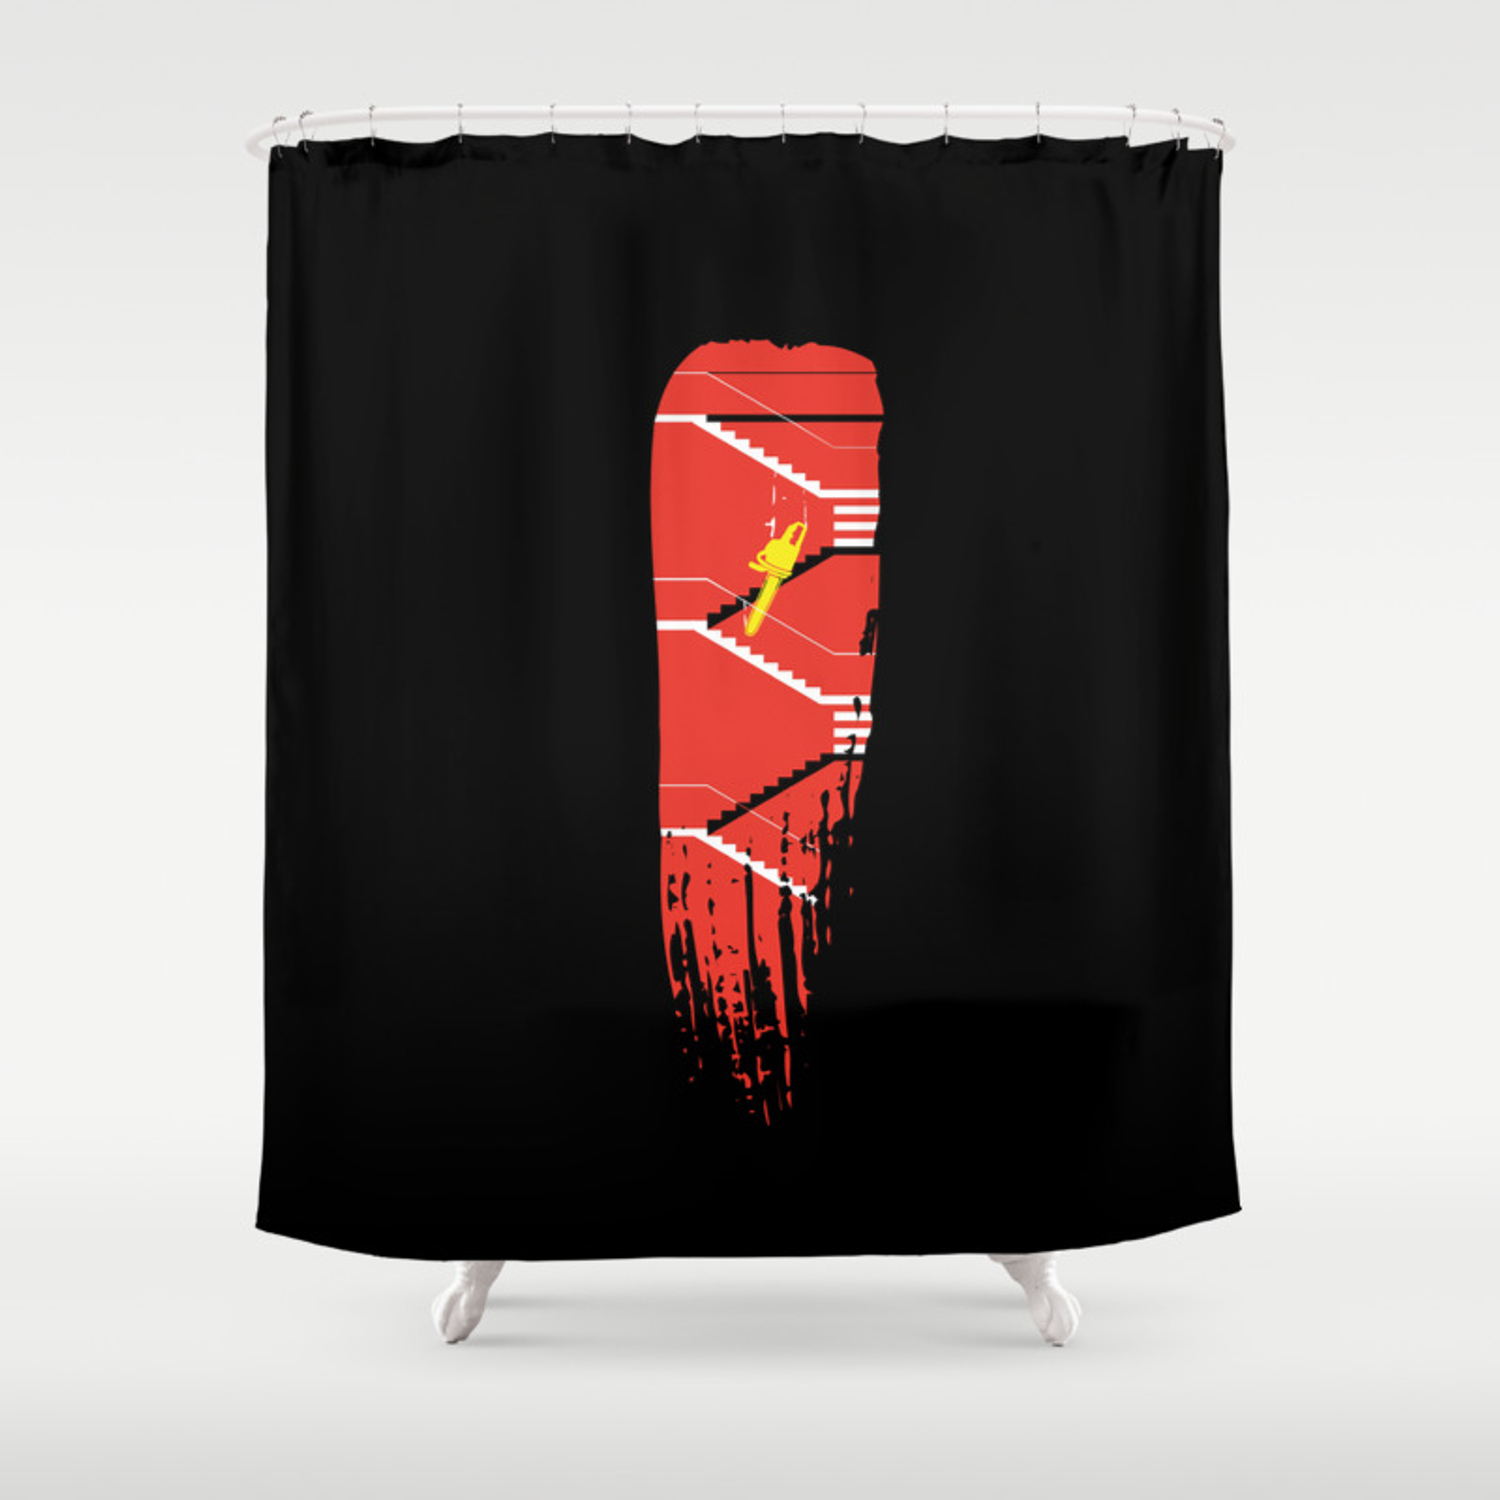 American Pyscho Shower Curtain